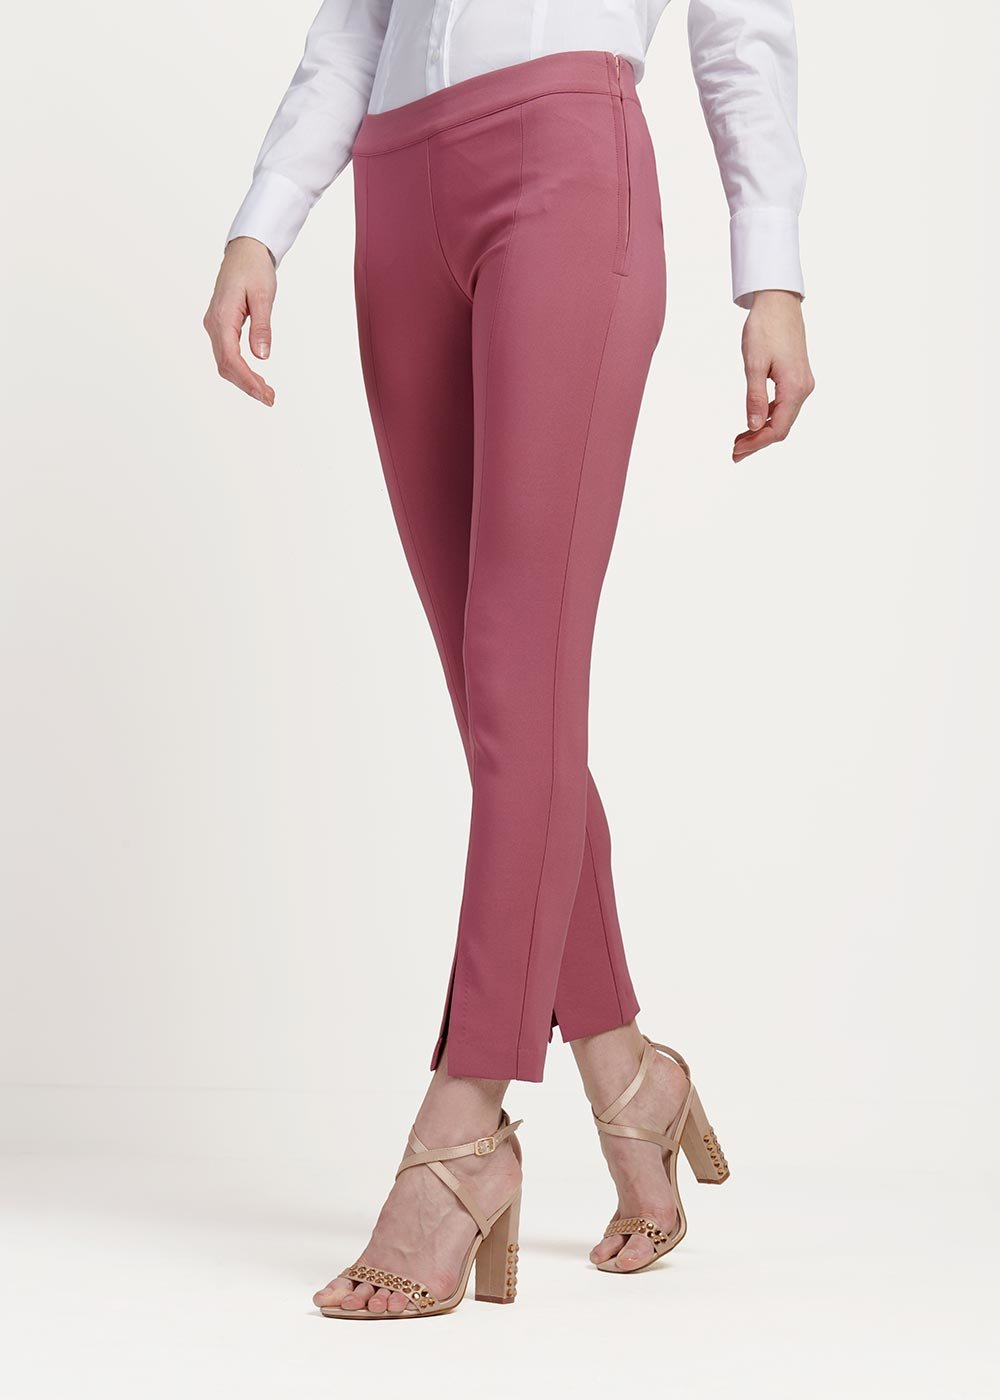 Peleo candy-coloured trousers - Candy - Woman